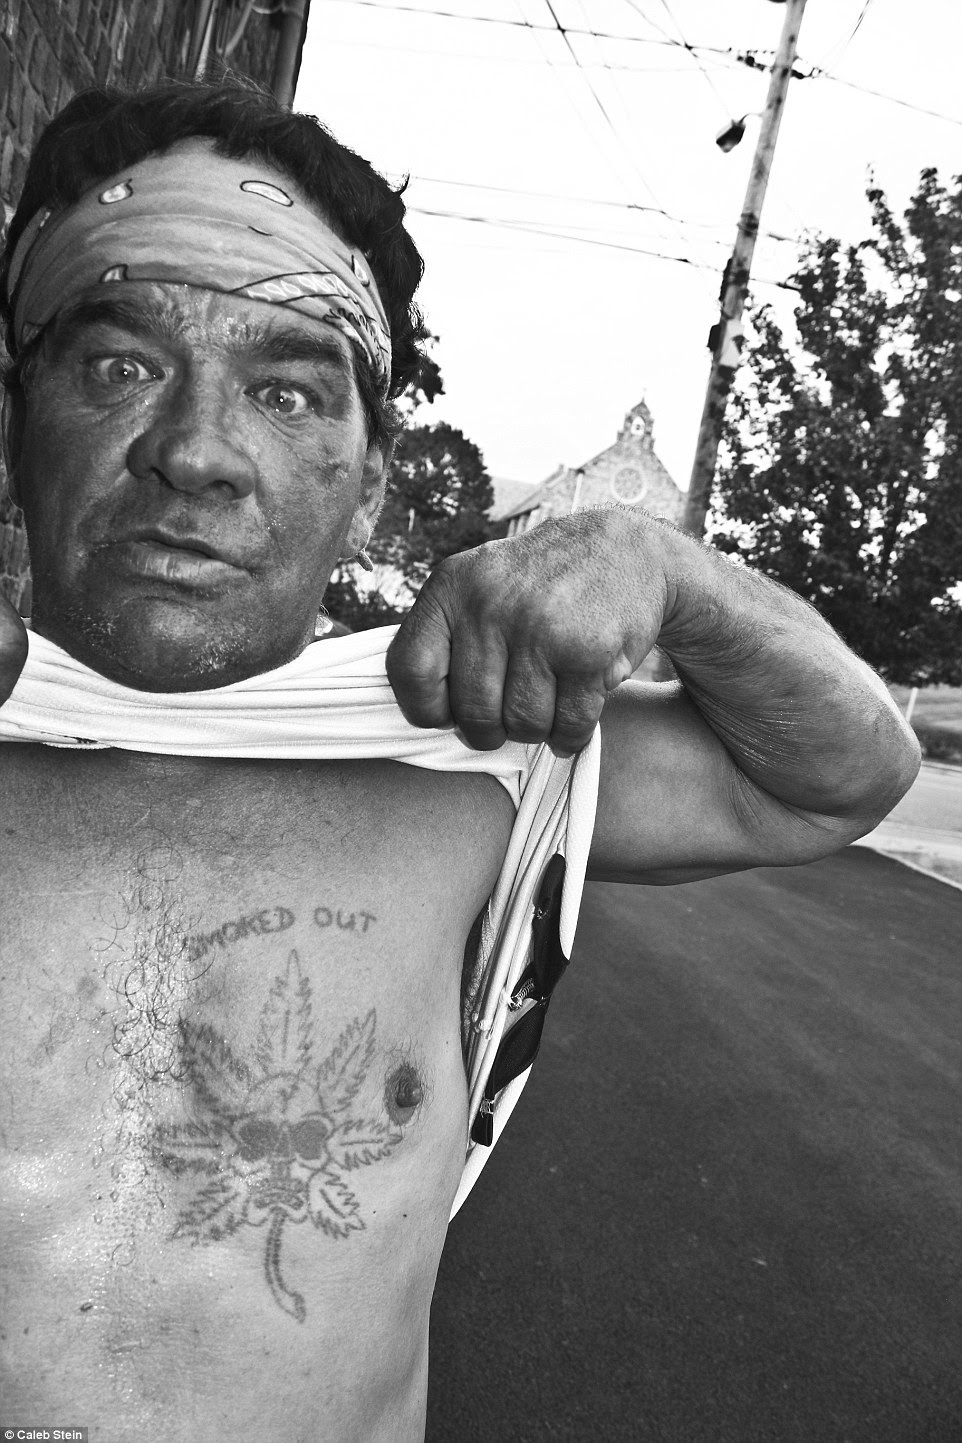 Striking new images show how some residents living just outside of New York City in Poughkeepsie are living below the poverty line as drugs and sex work run rampant in the city. Pictured above is a man named Artie showing off his 'smoked out' chest tattoo